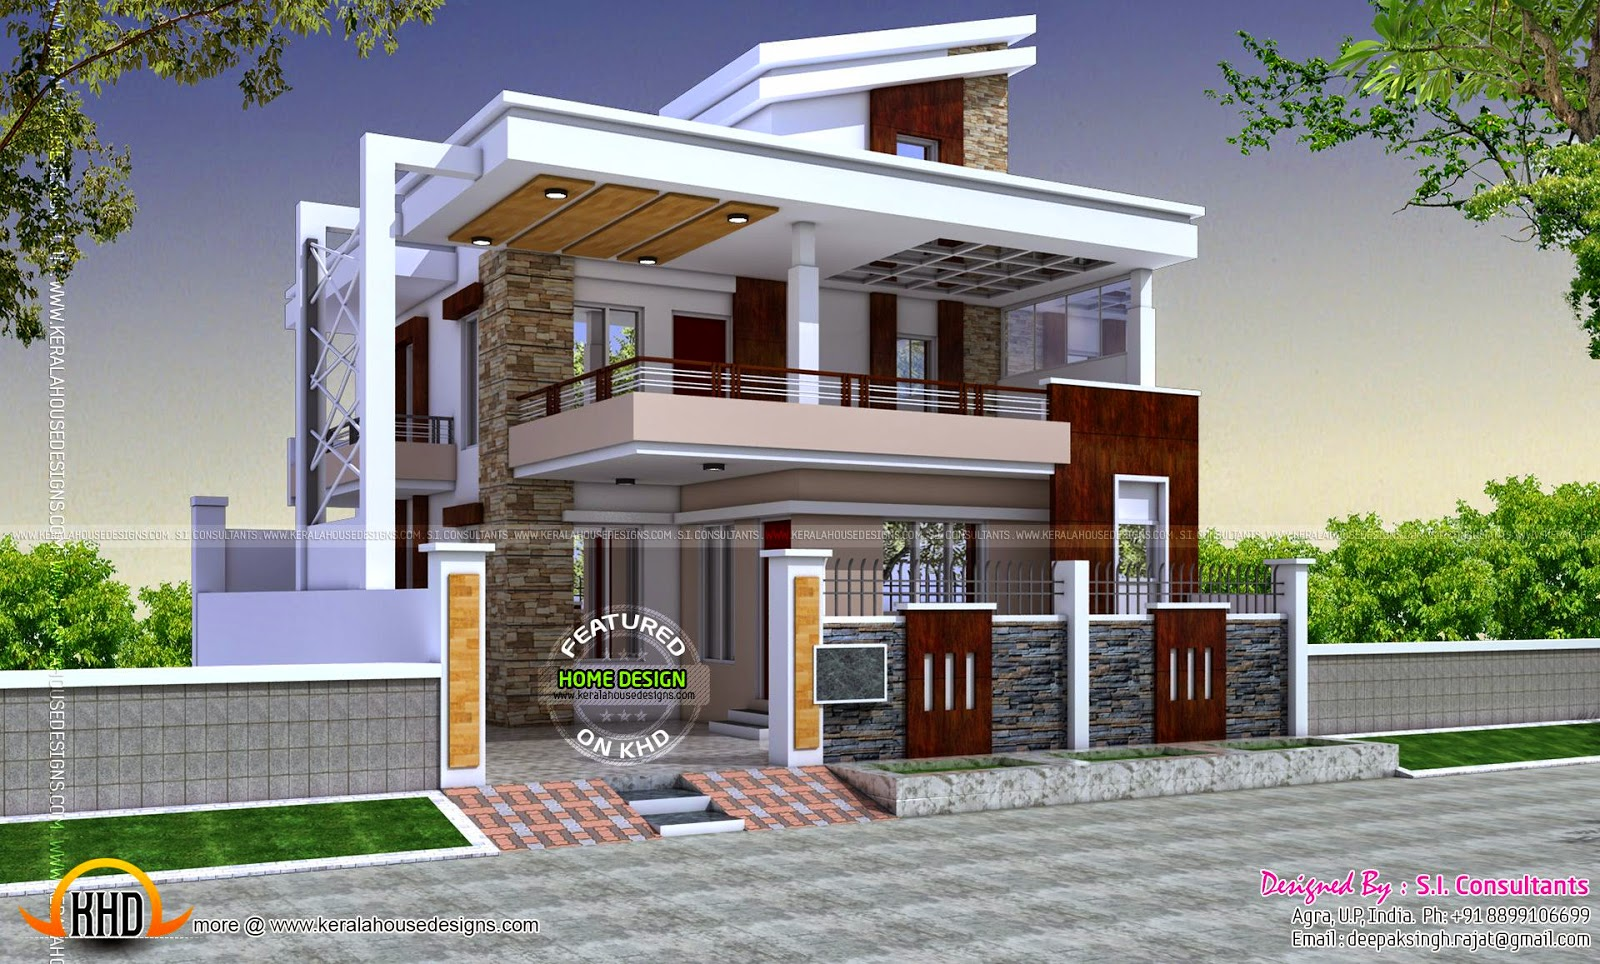 December 2014 kerala home design and floor plans Small home models pictures